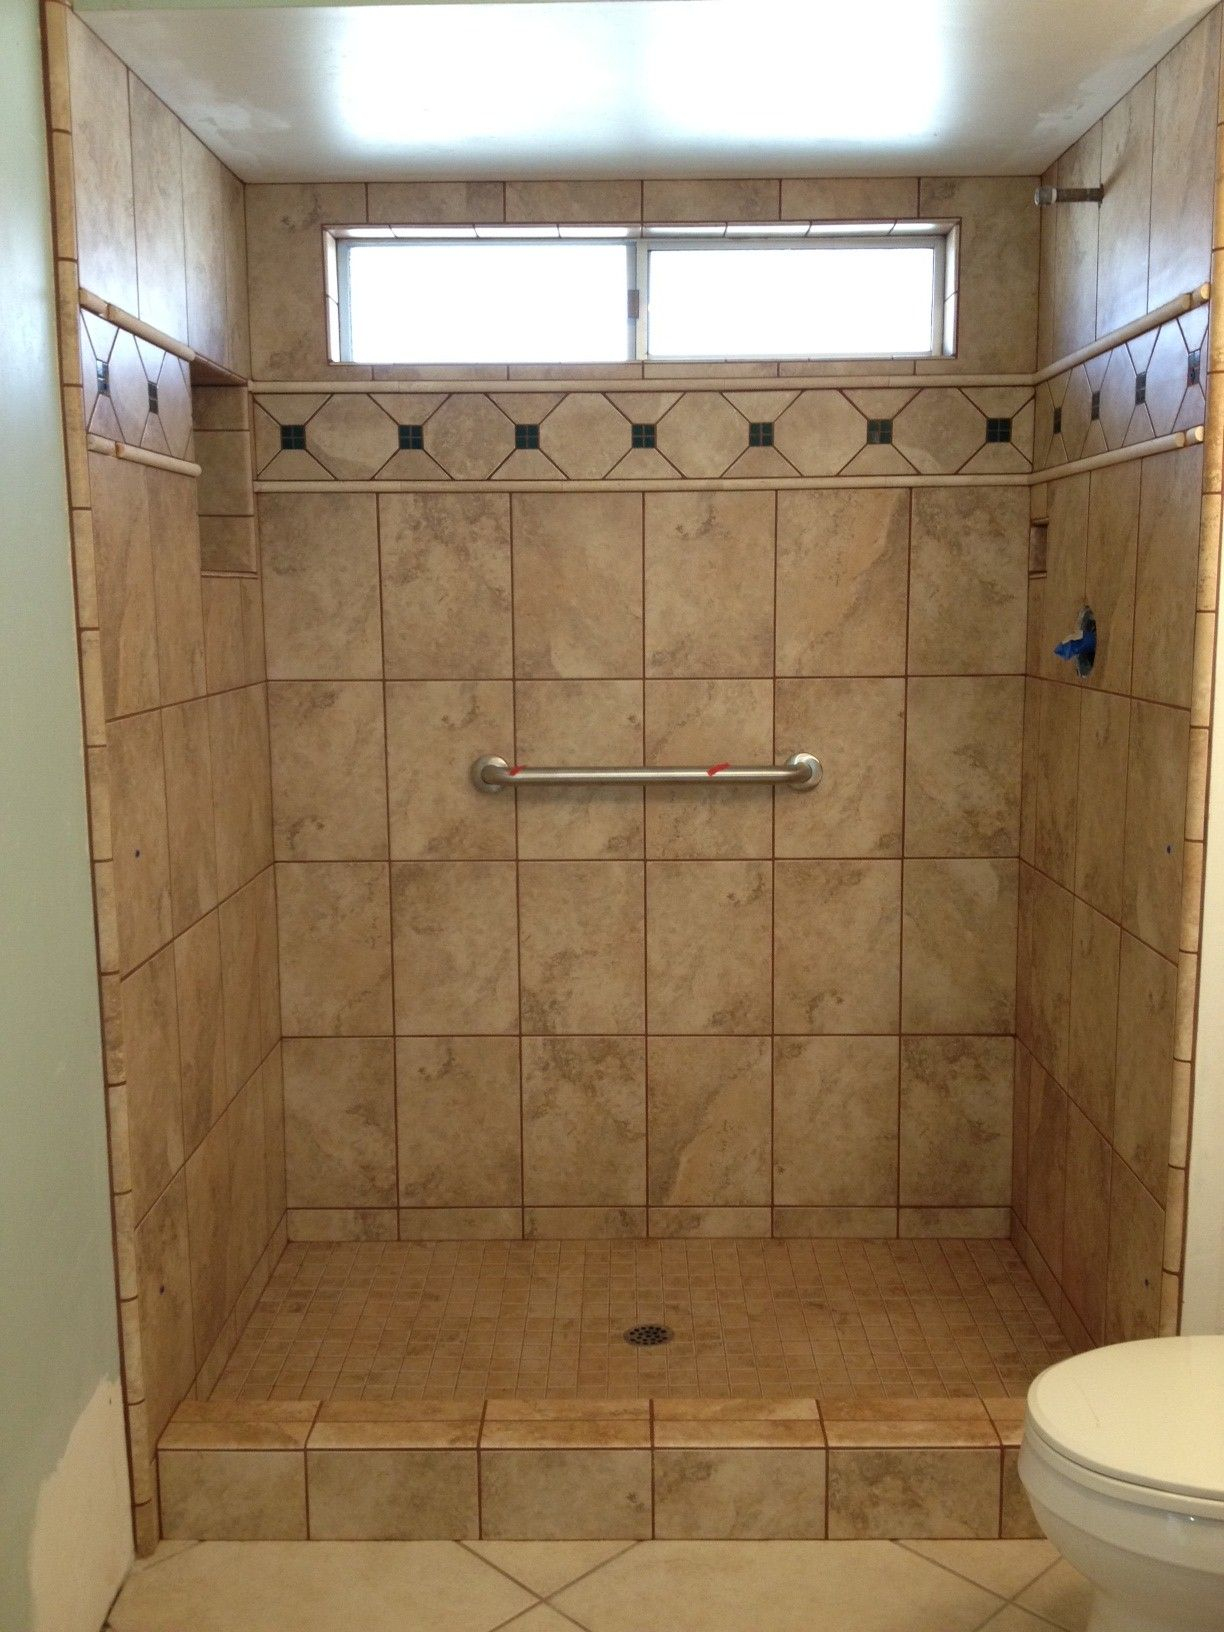 Photos of tiled shower stalls photos gallery custom tile work co photos of tiled shower stalls photos gallery custom tile work co ceramic dailygadgetfo Choice Image